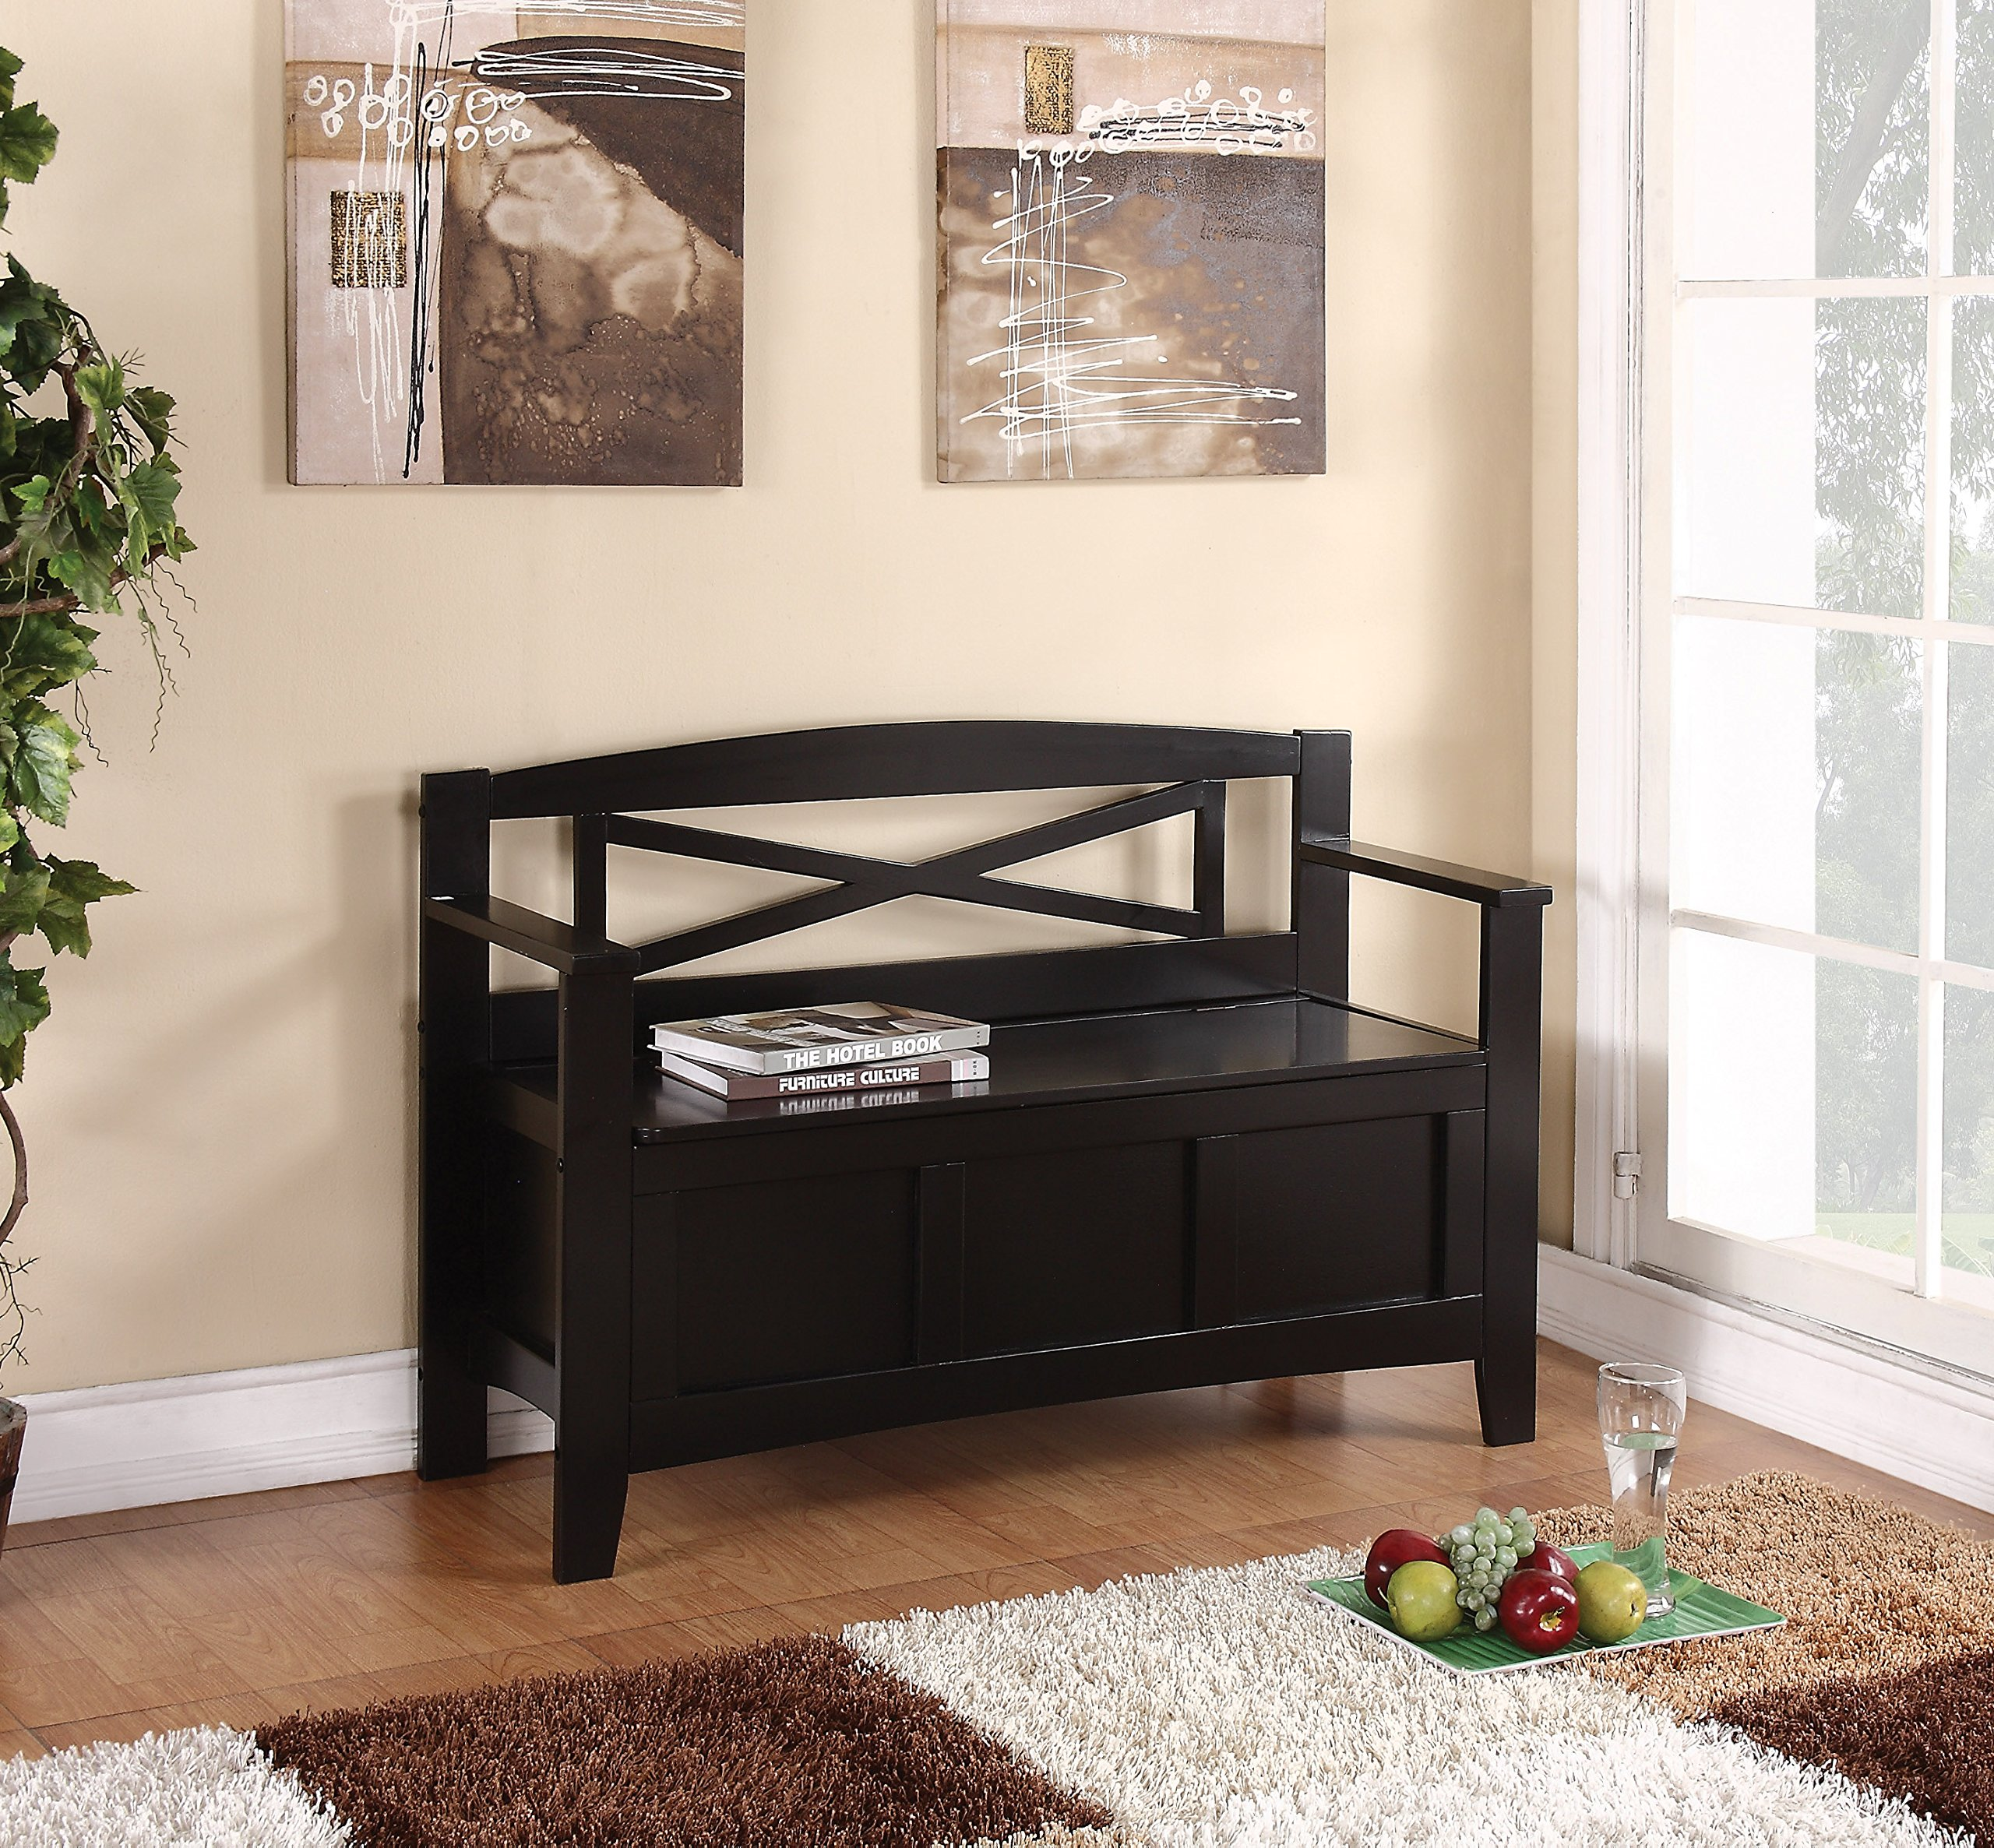 OSP Designs Office Star Metro X-Back Style Wood Entry Way Bench with Storage, Black finish